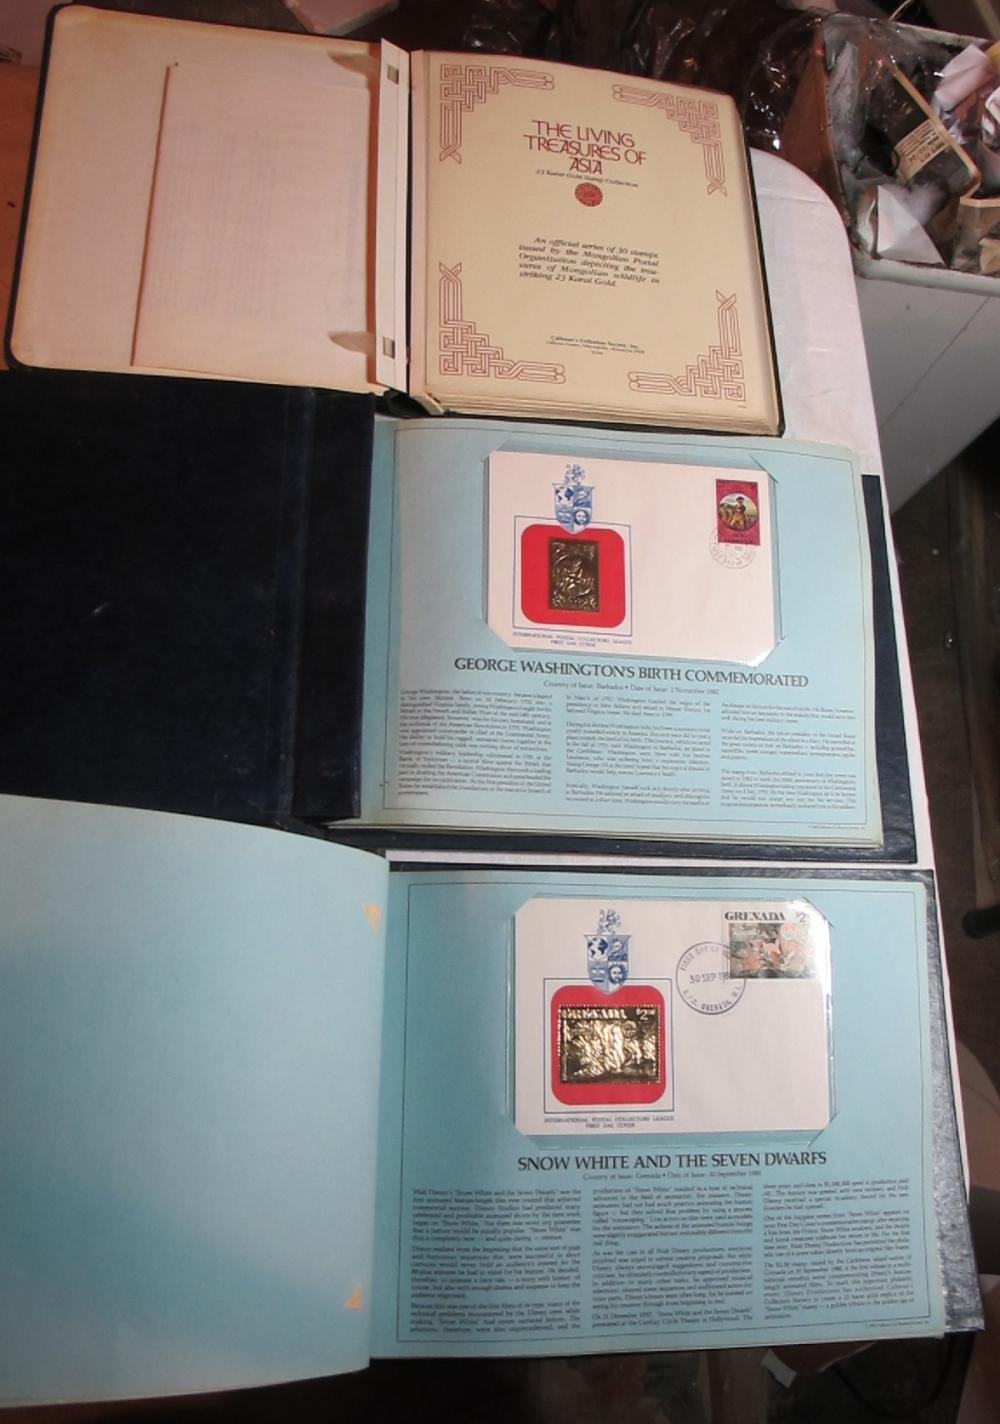 Lot 146: 105 23KT GOLD FOIL STAMPS IN 3 ALBUMS TREASURES OF ASIA + 75 FDC ROYAL INTL COLLECTION